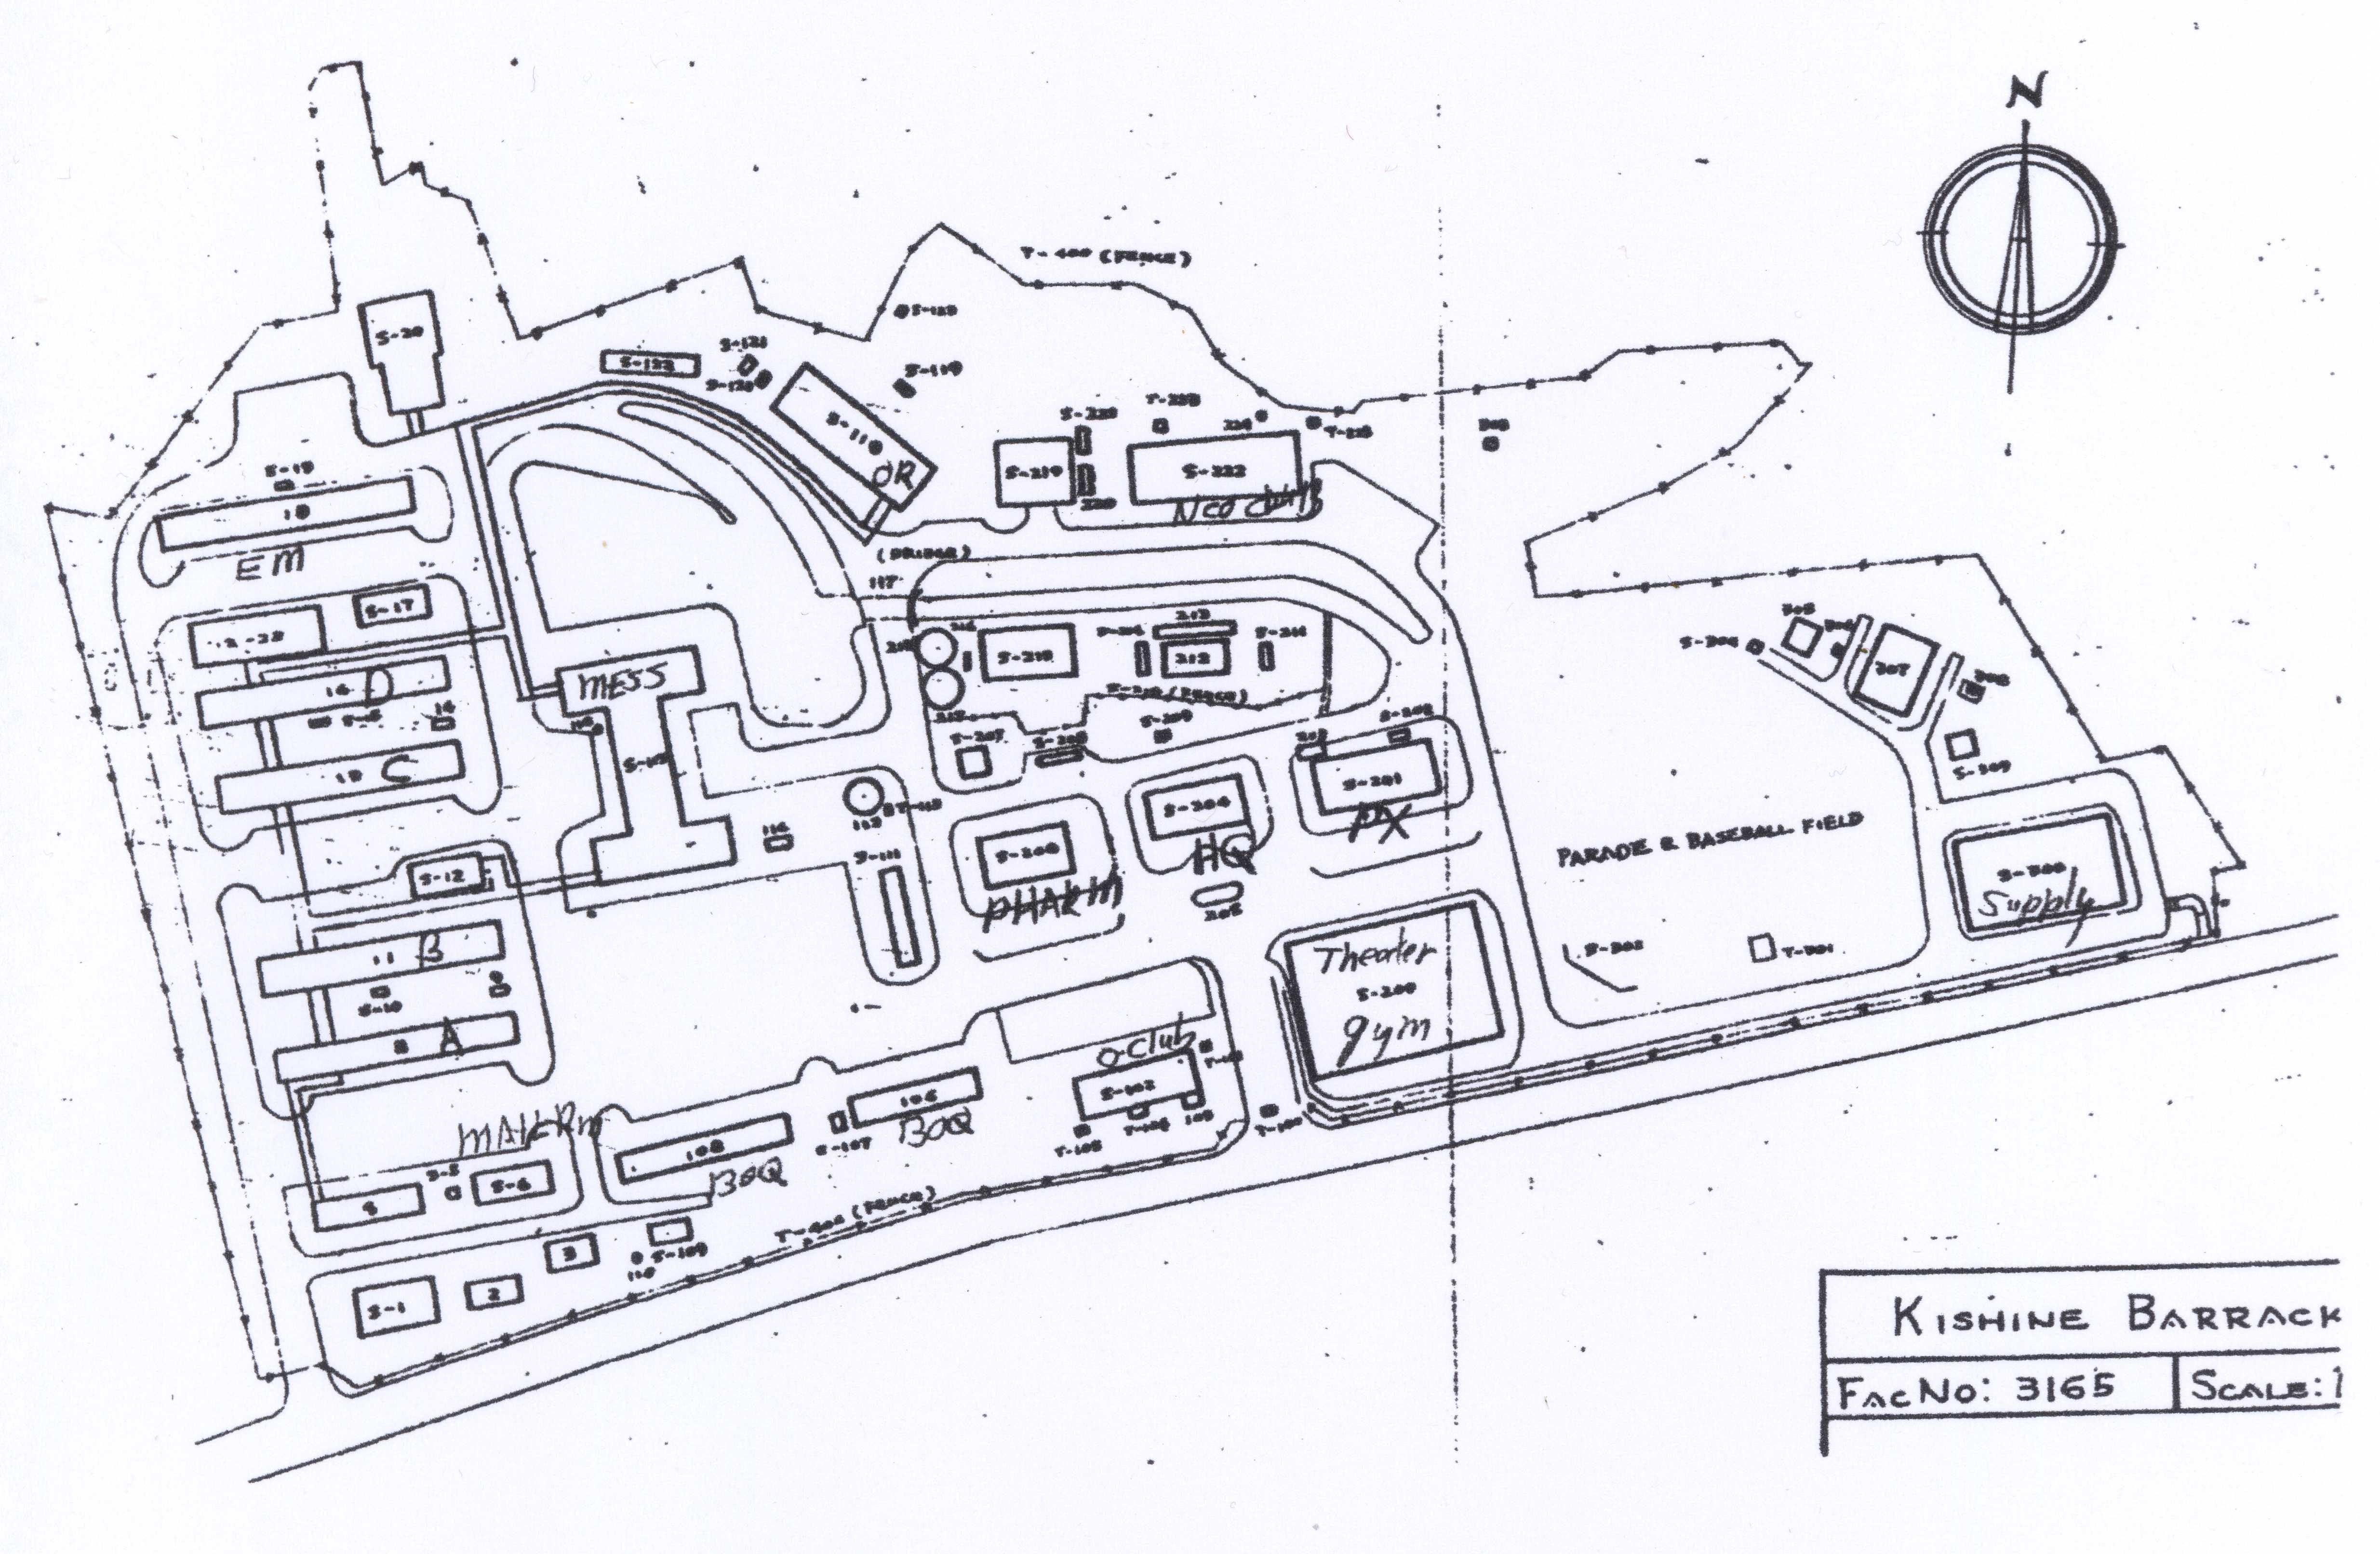 Yosha Bunko Hospital Wiring Circuit Diagram Map Of 106th General Installations Page 10 1969 Report As Scanned